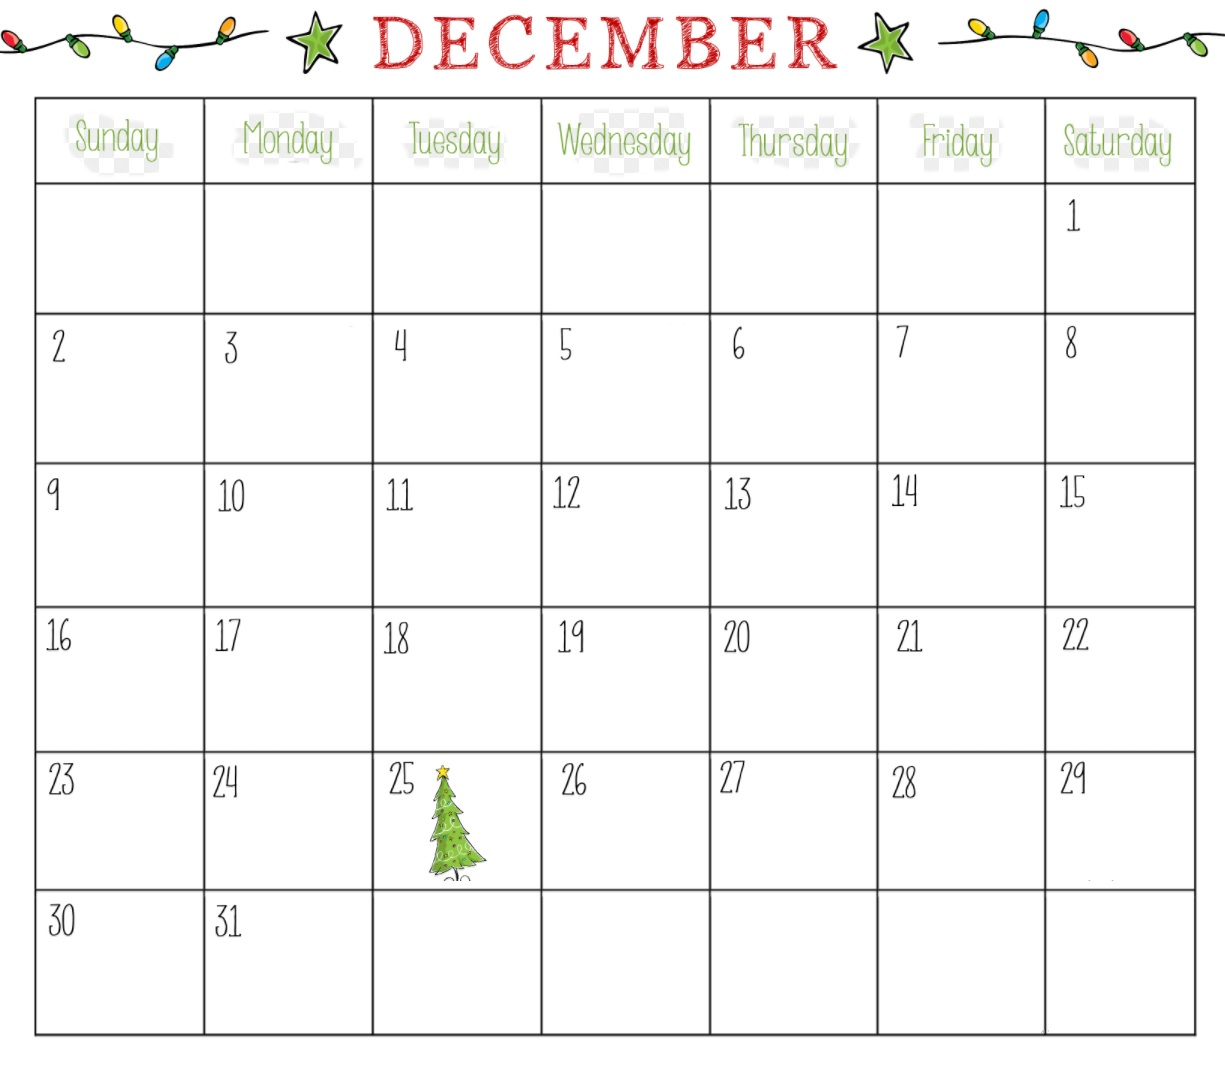 Printable December 2018 Blank Calendar For Office